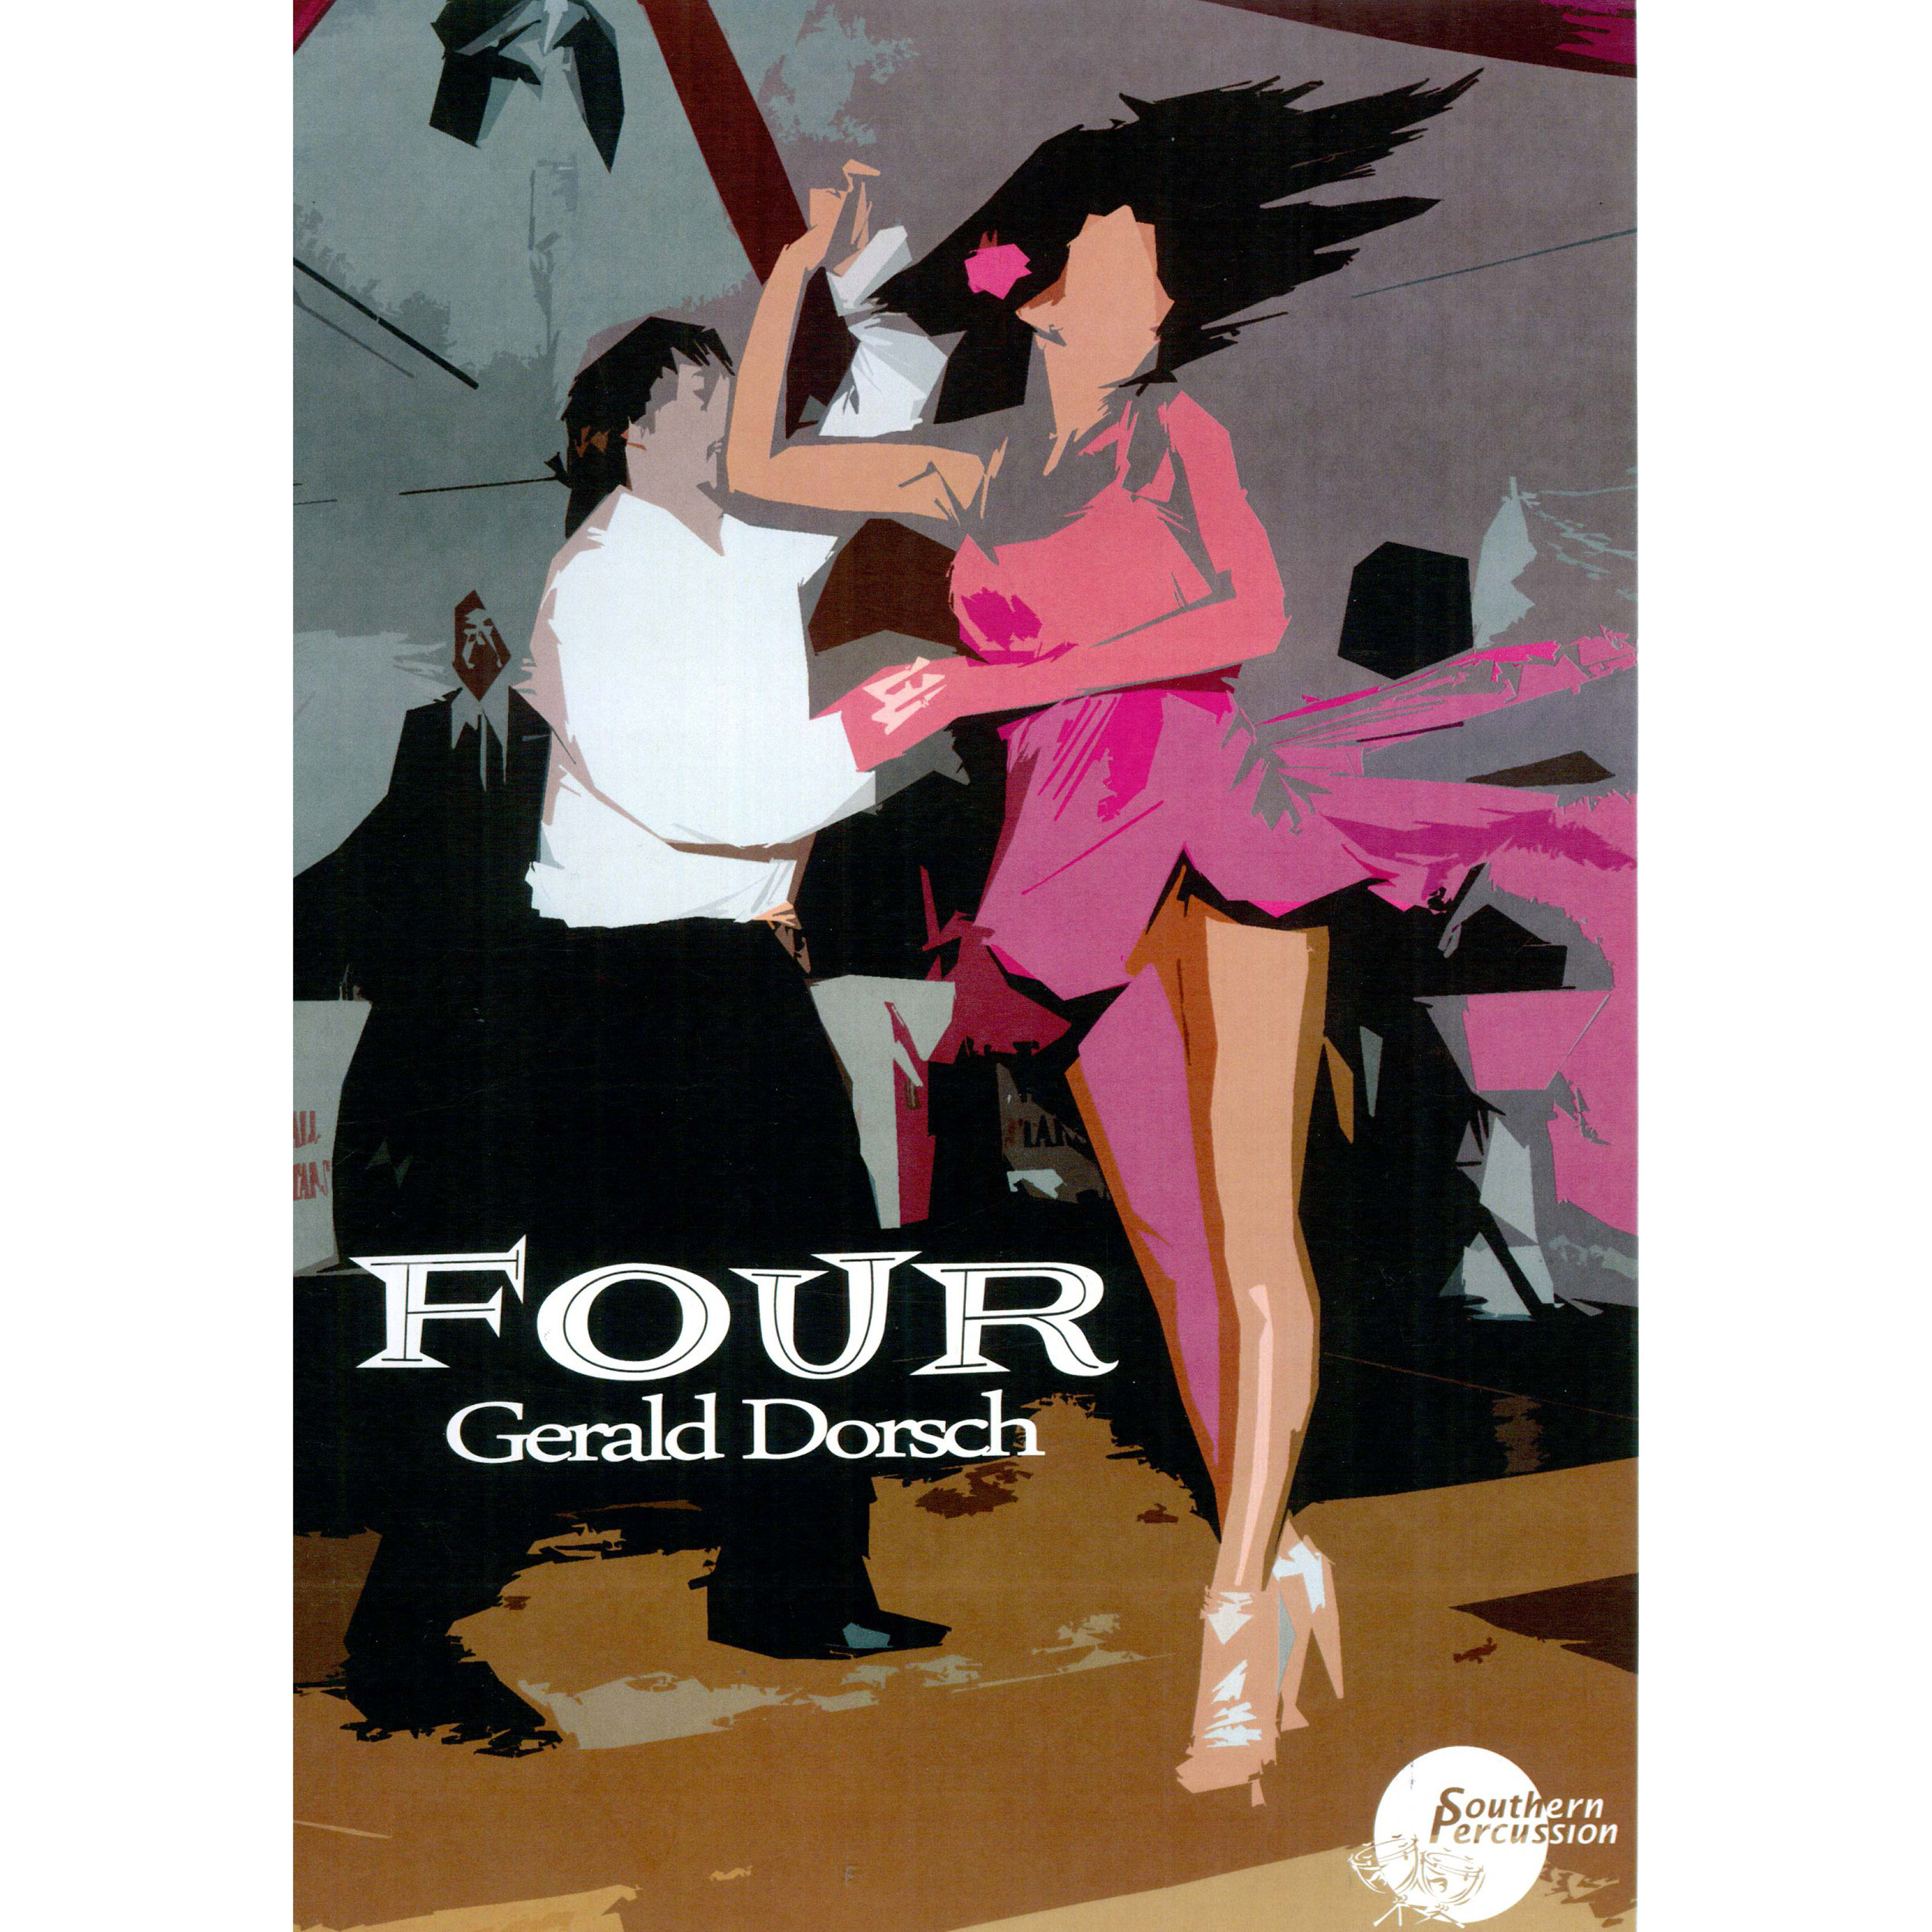 Four by Gerald Dorsch